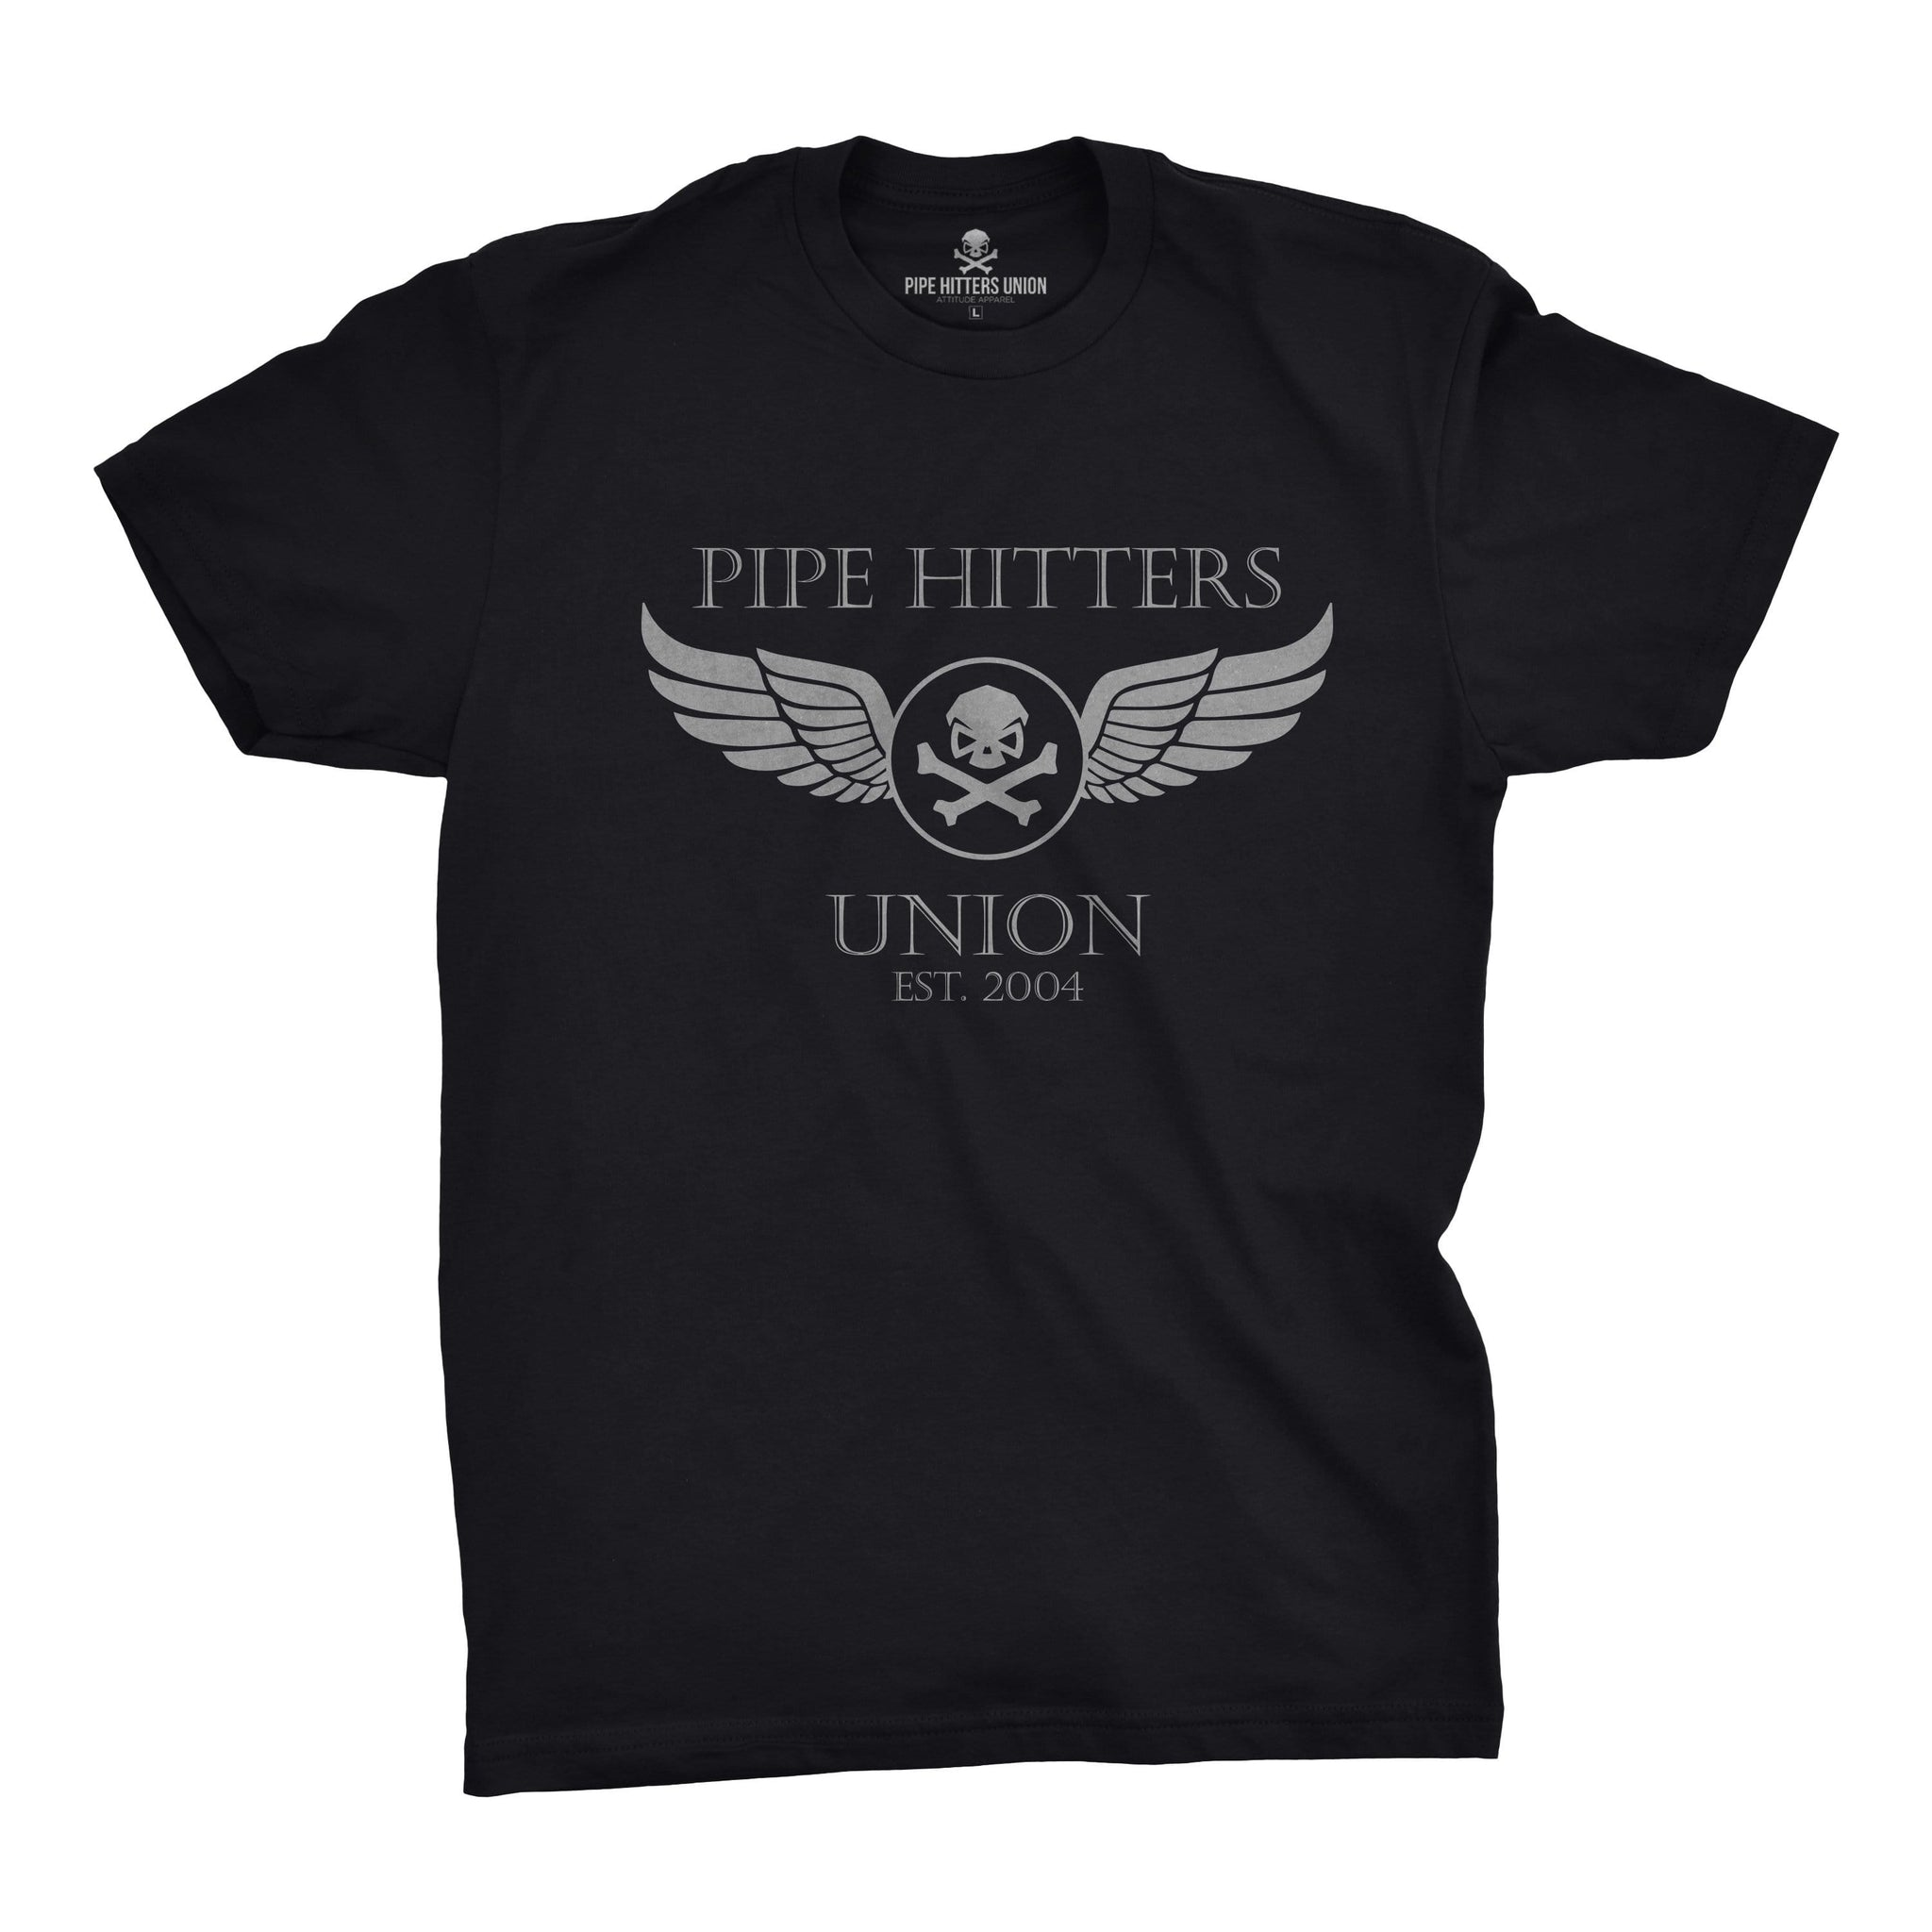 Wings - Black - T-Shirts - Pipe Hitters Union